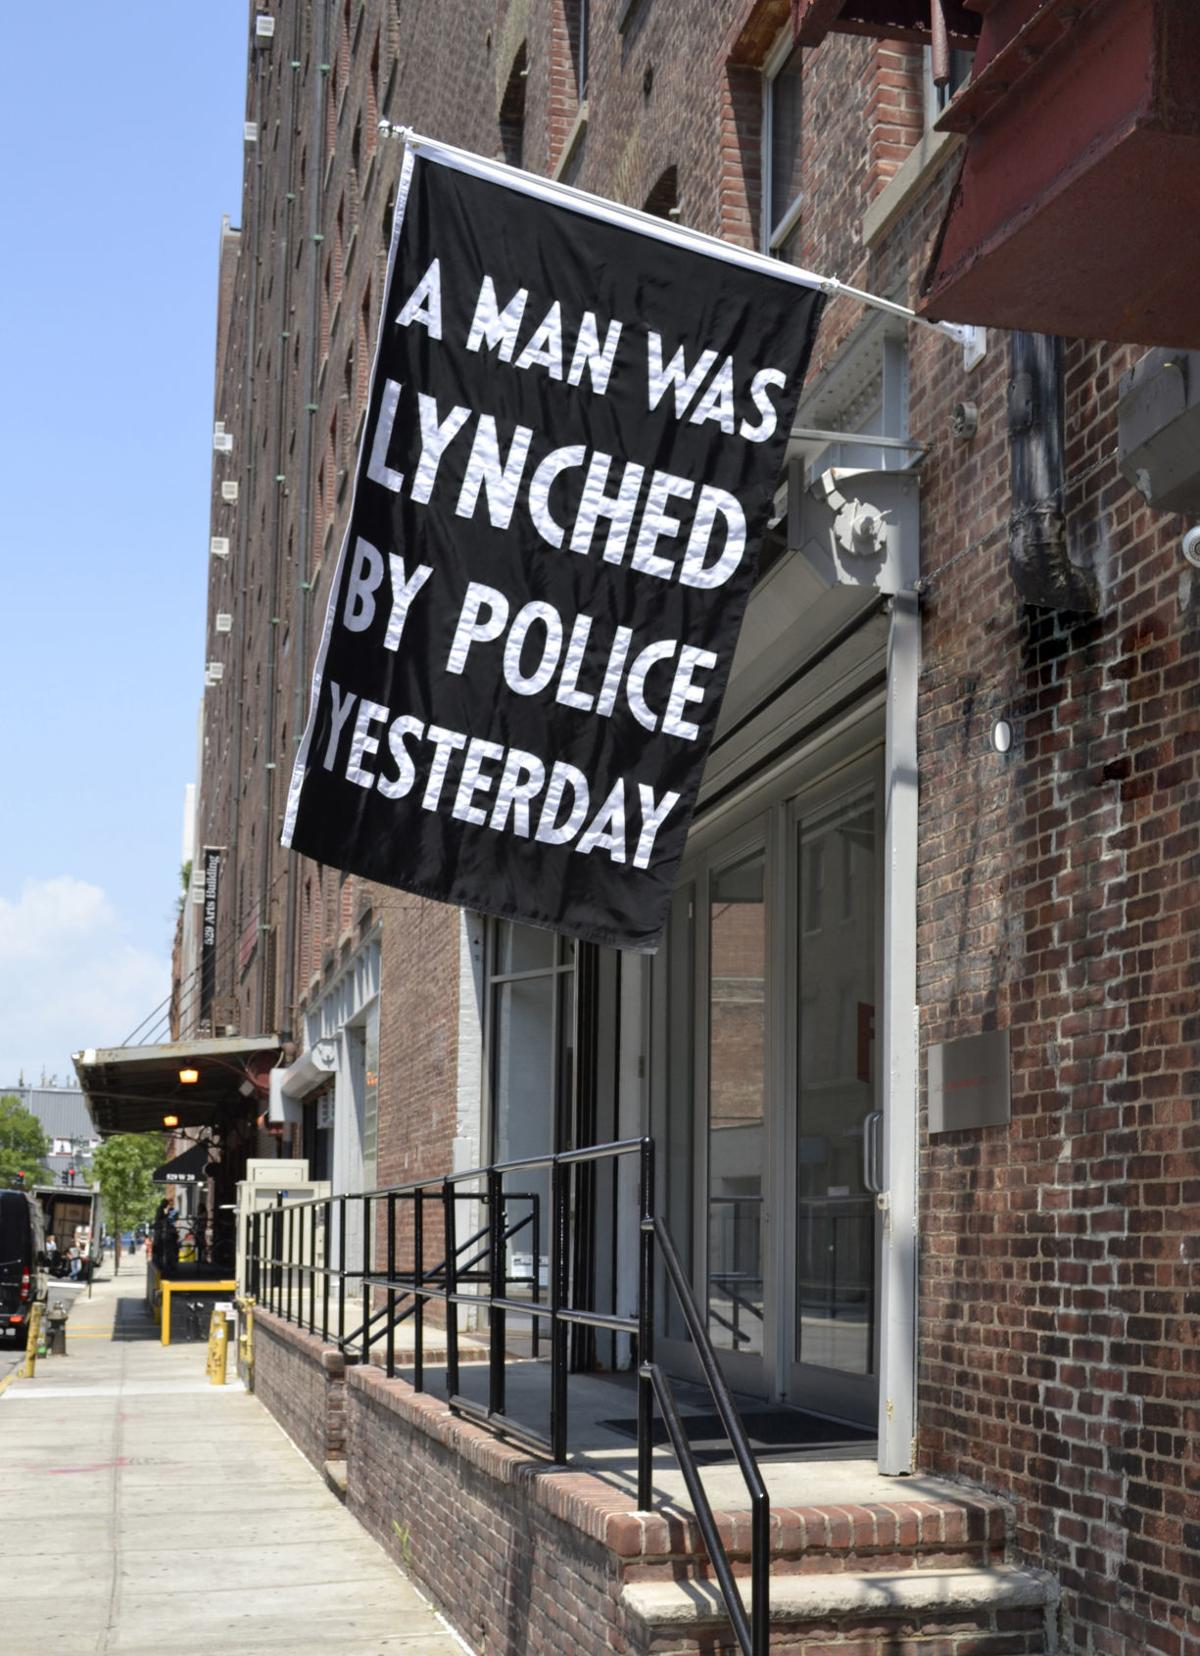 A Man Was Lynched By Police Yesterday